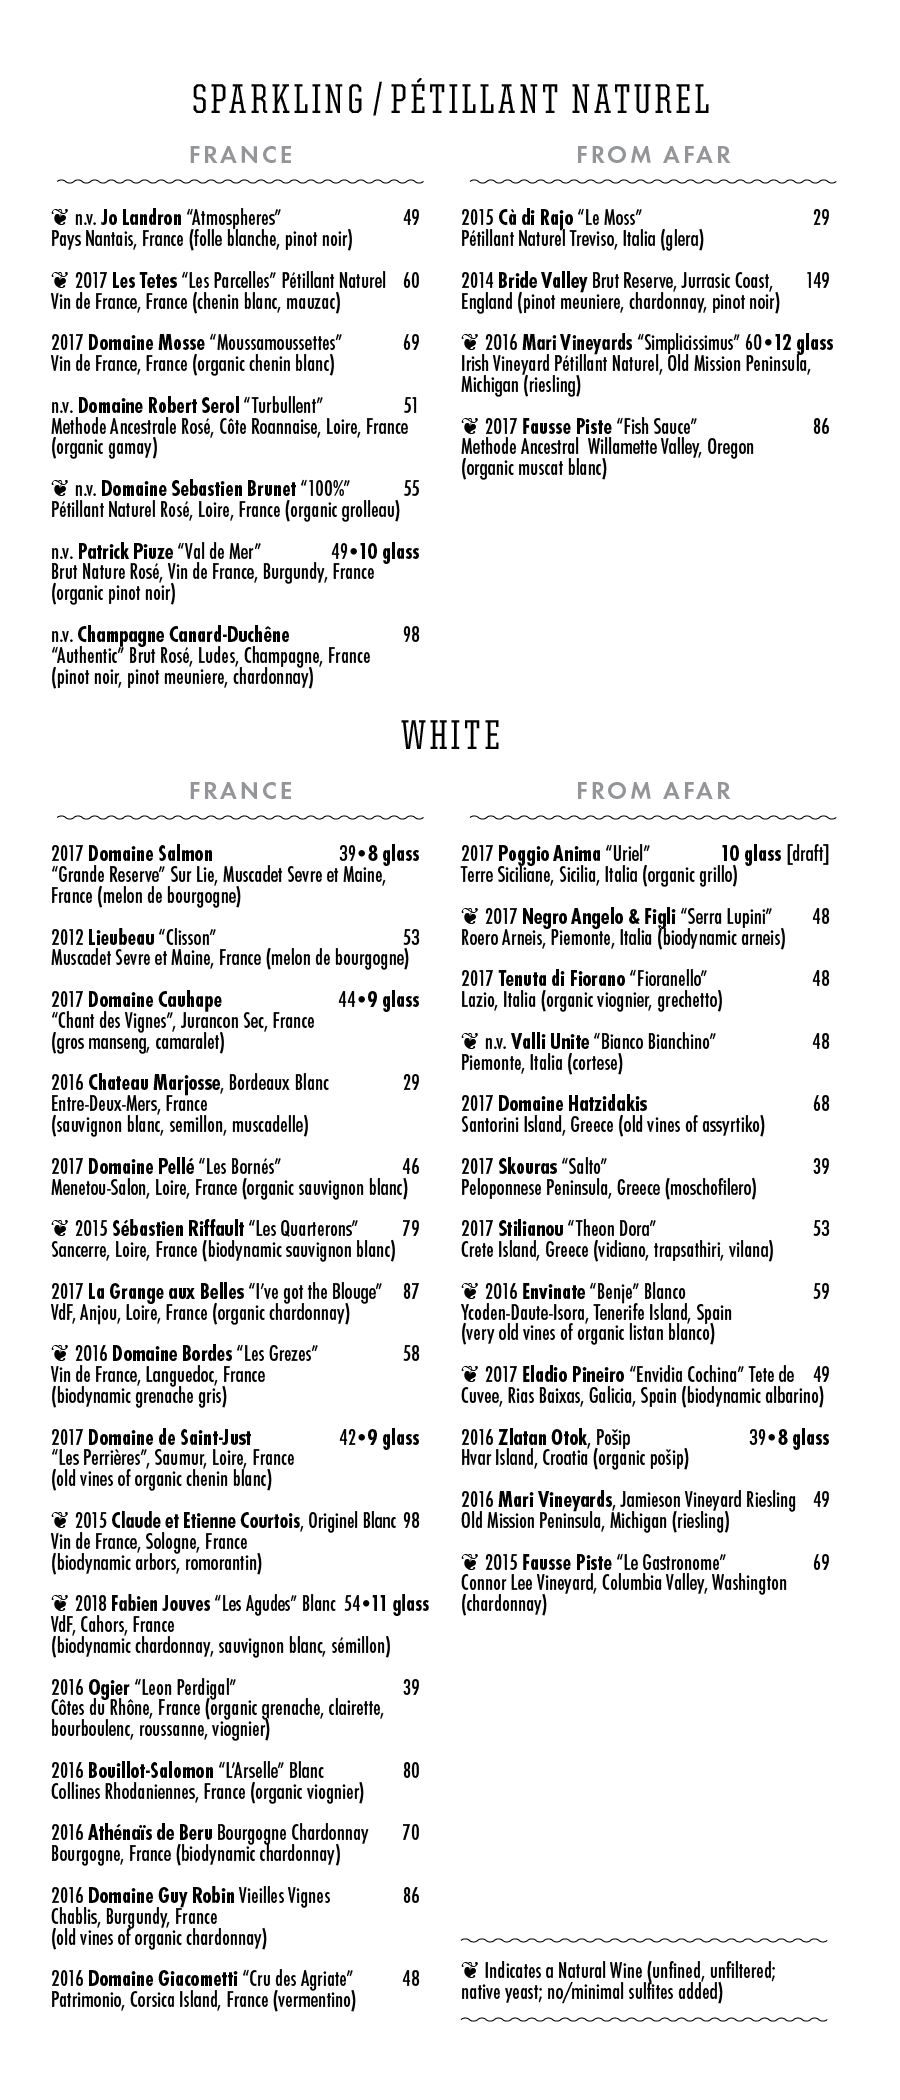 05.13.19 WINE Menu 6x14.png